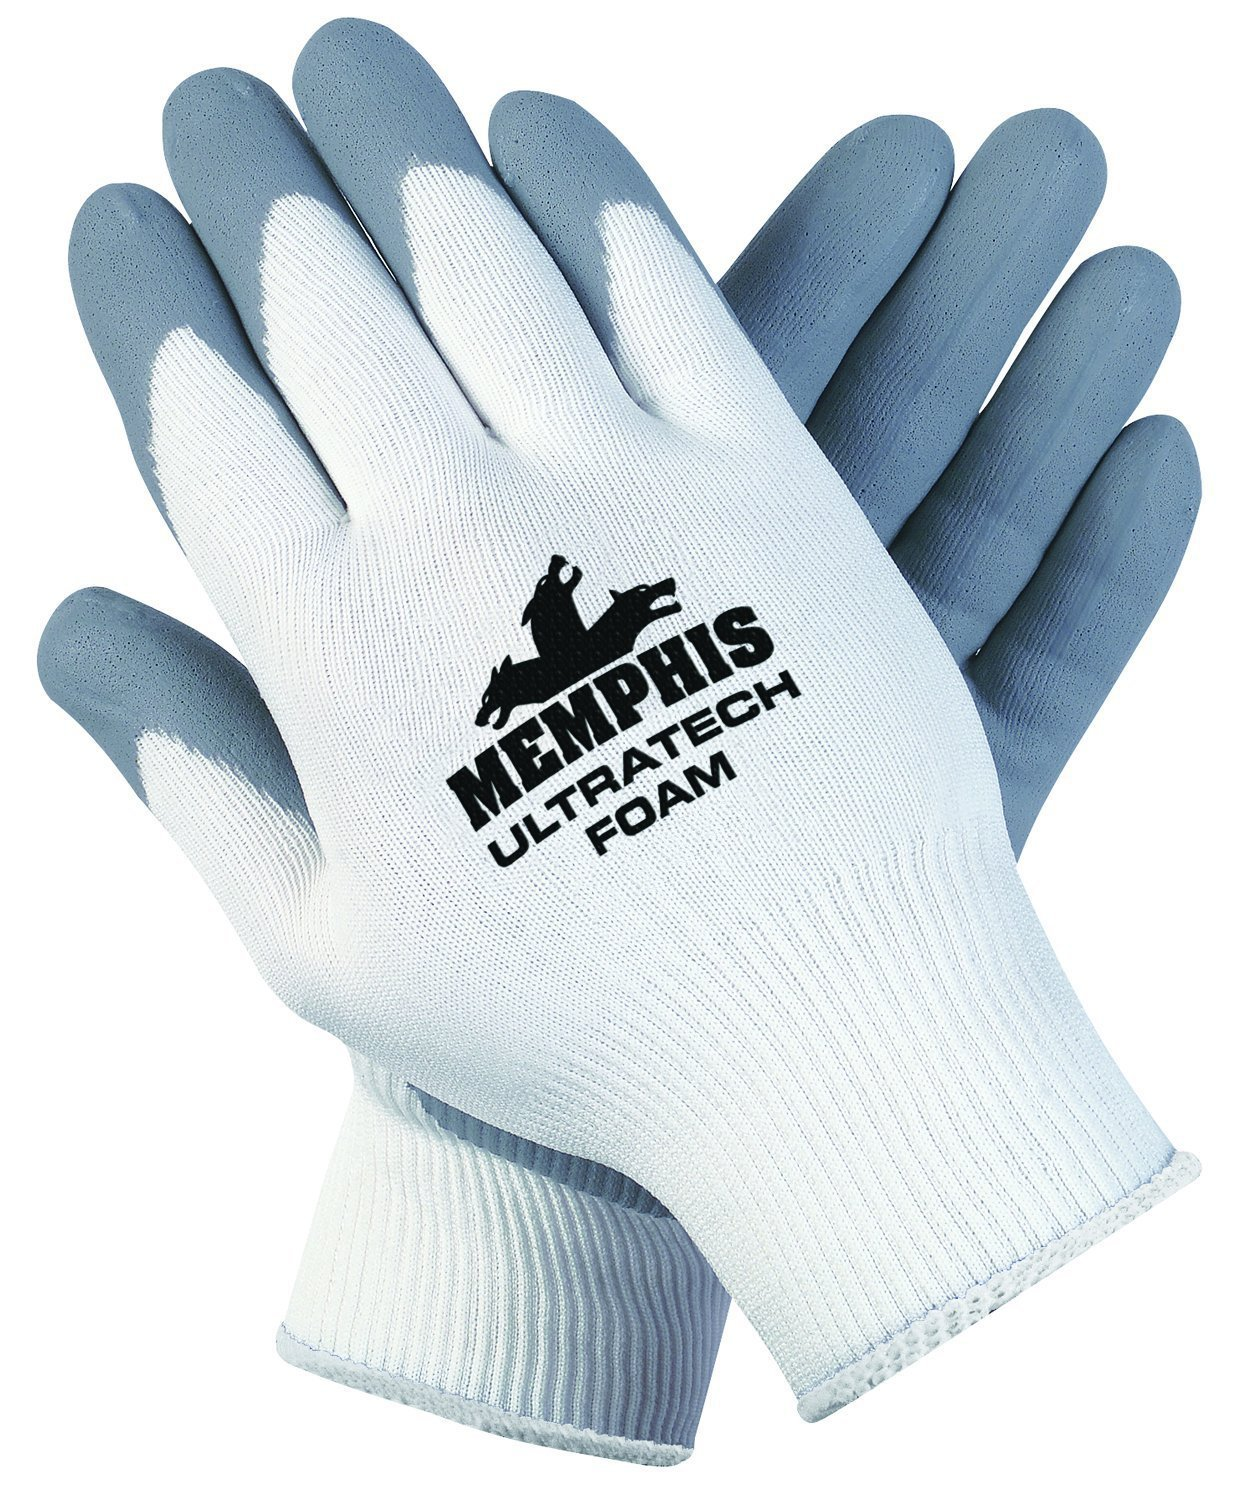 79a535036f Memphis Glove 9674L Ultratech Foam Seamless 15 Gauge Nylon Knit ...